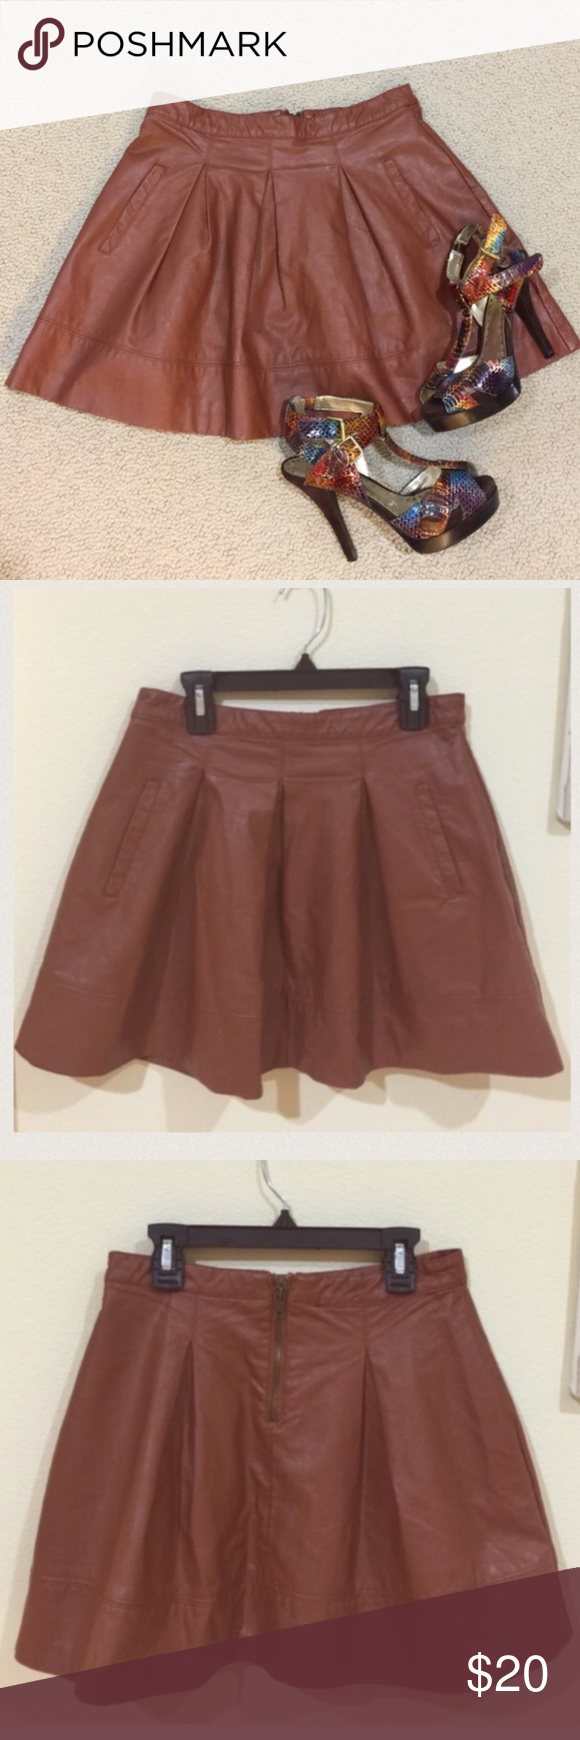 Forever 21 caramel brown faux leather skater skirt gently worn , size S , 15 inches from top to bottom, not leather, very cute on, front pockets , has lining , REASONABLE OFFeRS ACCEPTED Forever 21 Skirts Mini